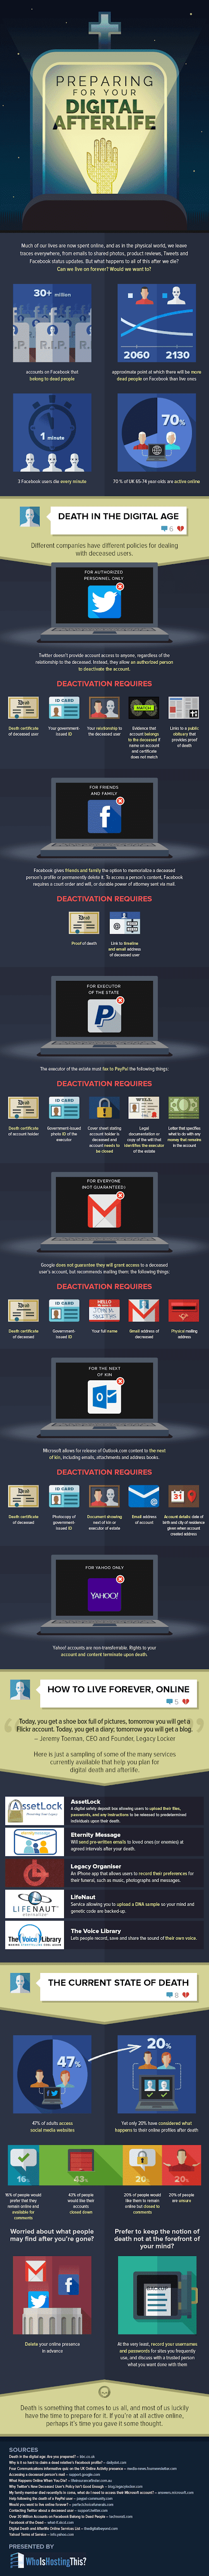 Preparing for Your Digital Afterlife #infographic